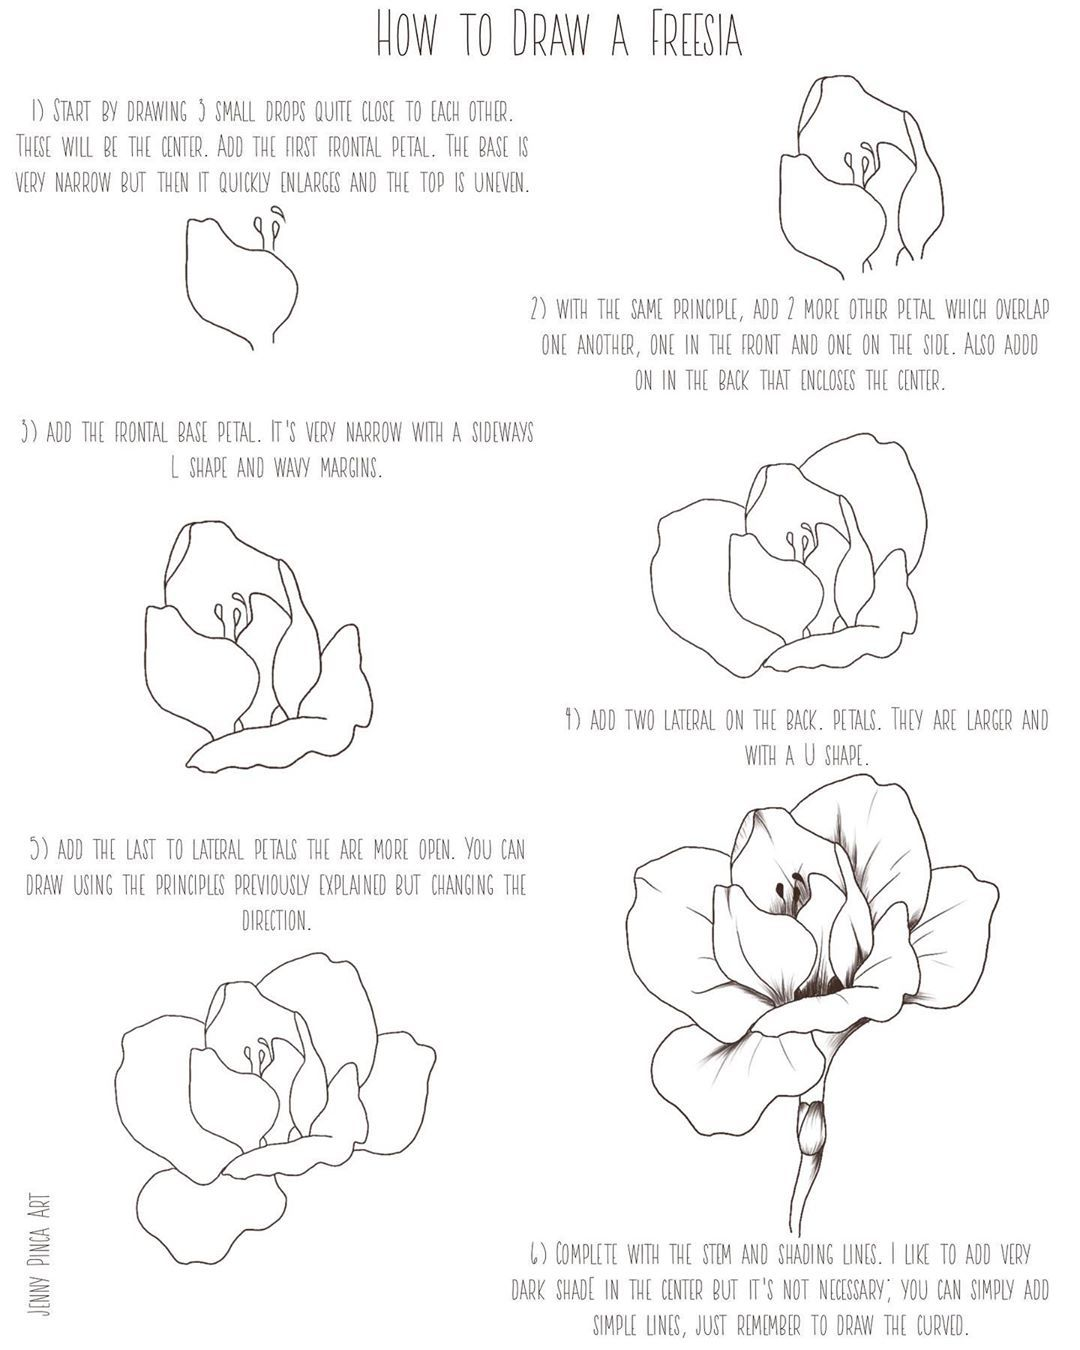 How To Draw A Freesia As Promised Here S My Drawingtutorial For Drawing The Freesia Open Flower Let Me Know W Nature Drawing Open Flower Drawing Tutorial